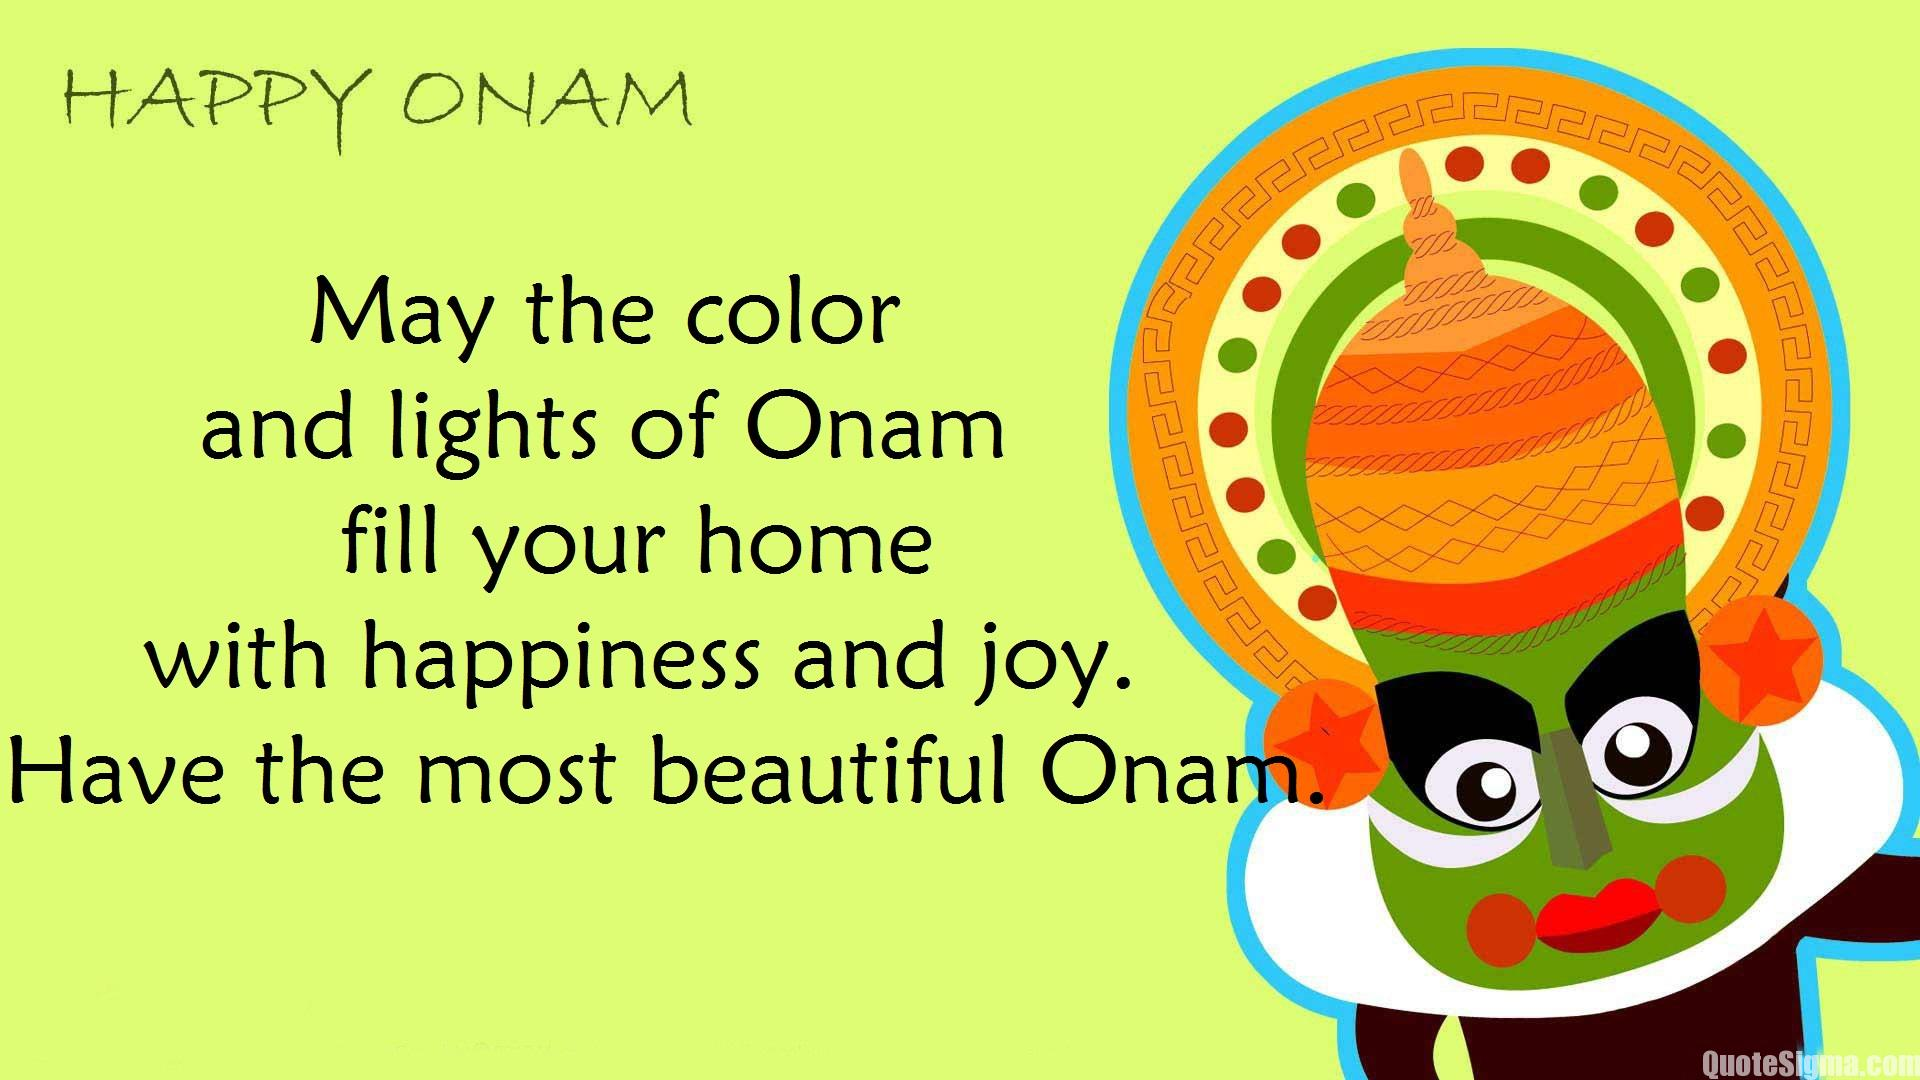 Happy Onam 2019 Wishes